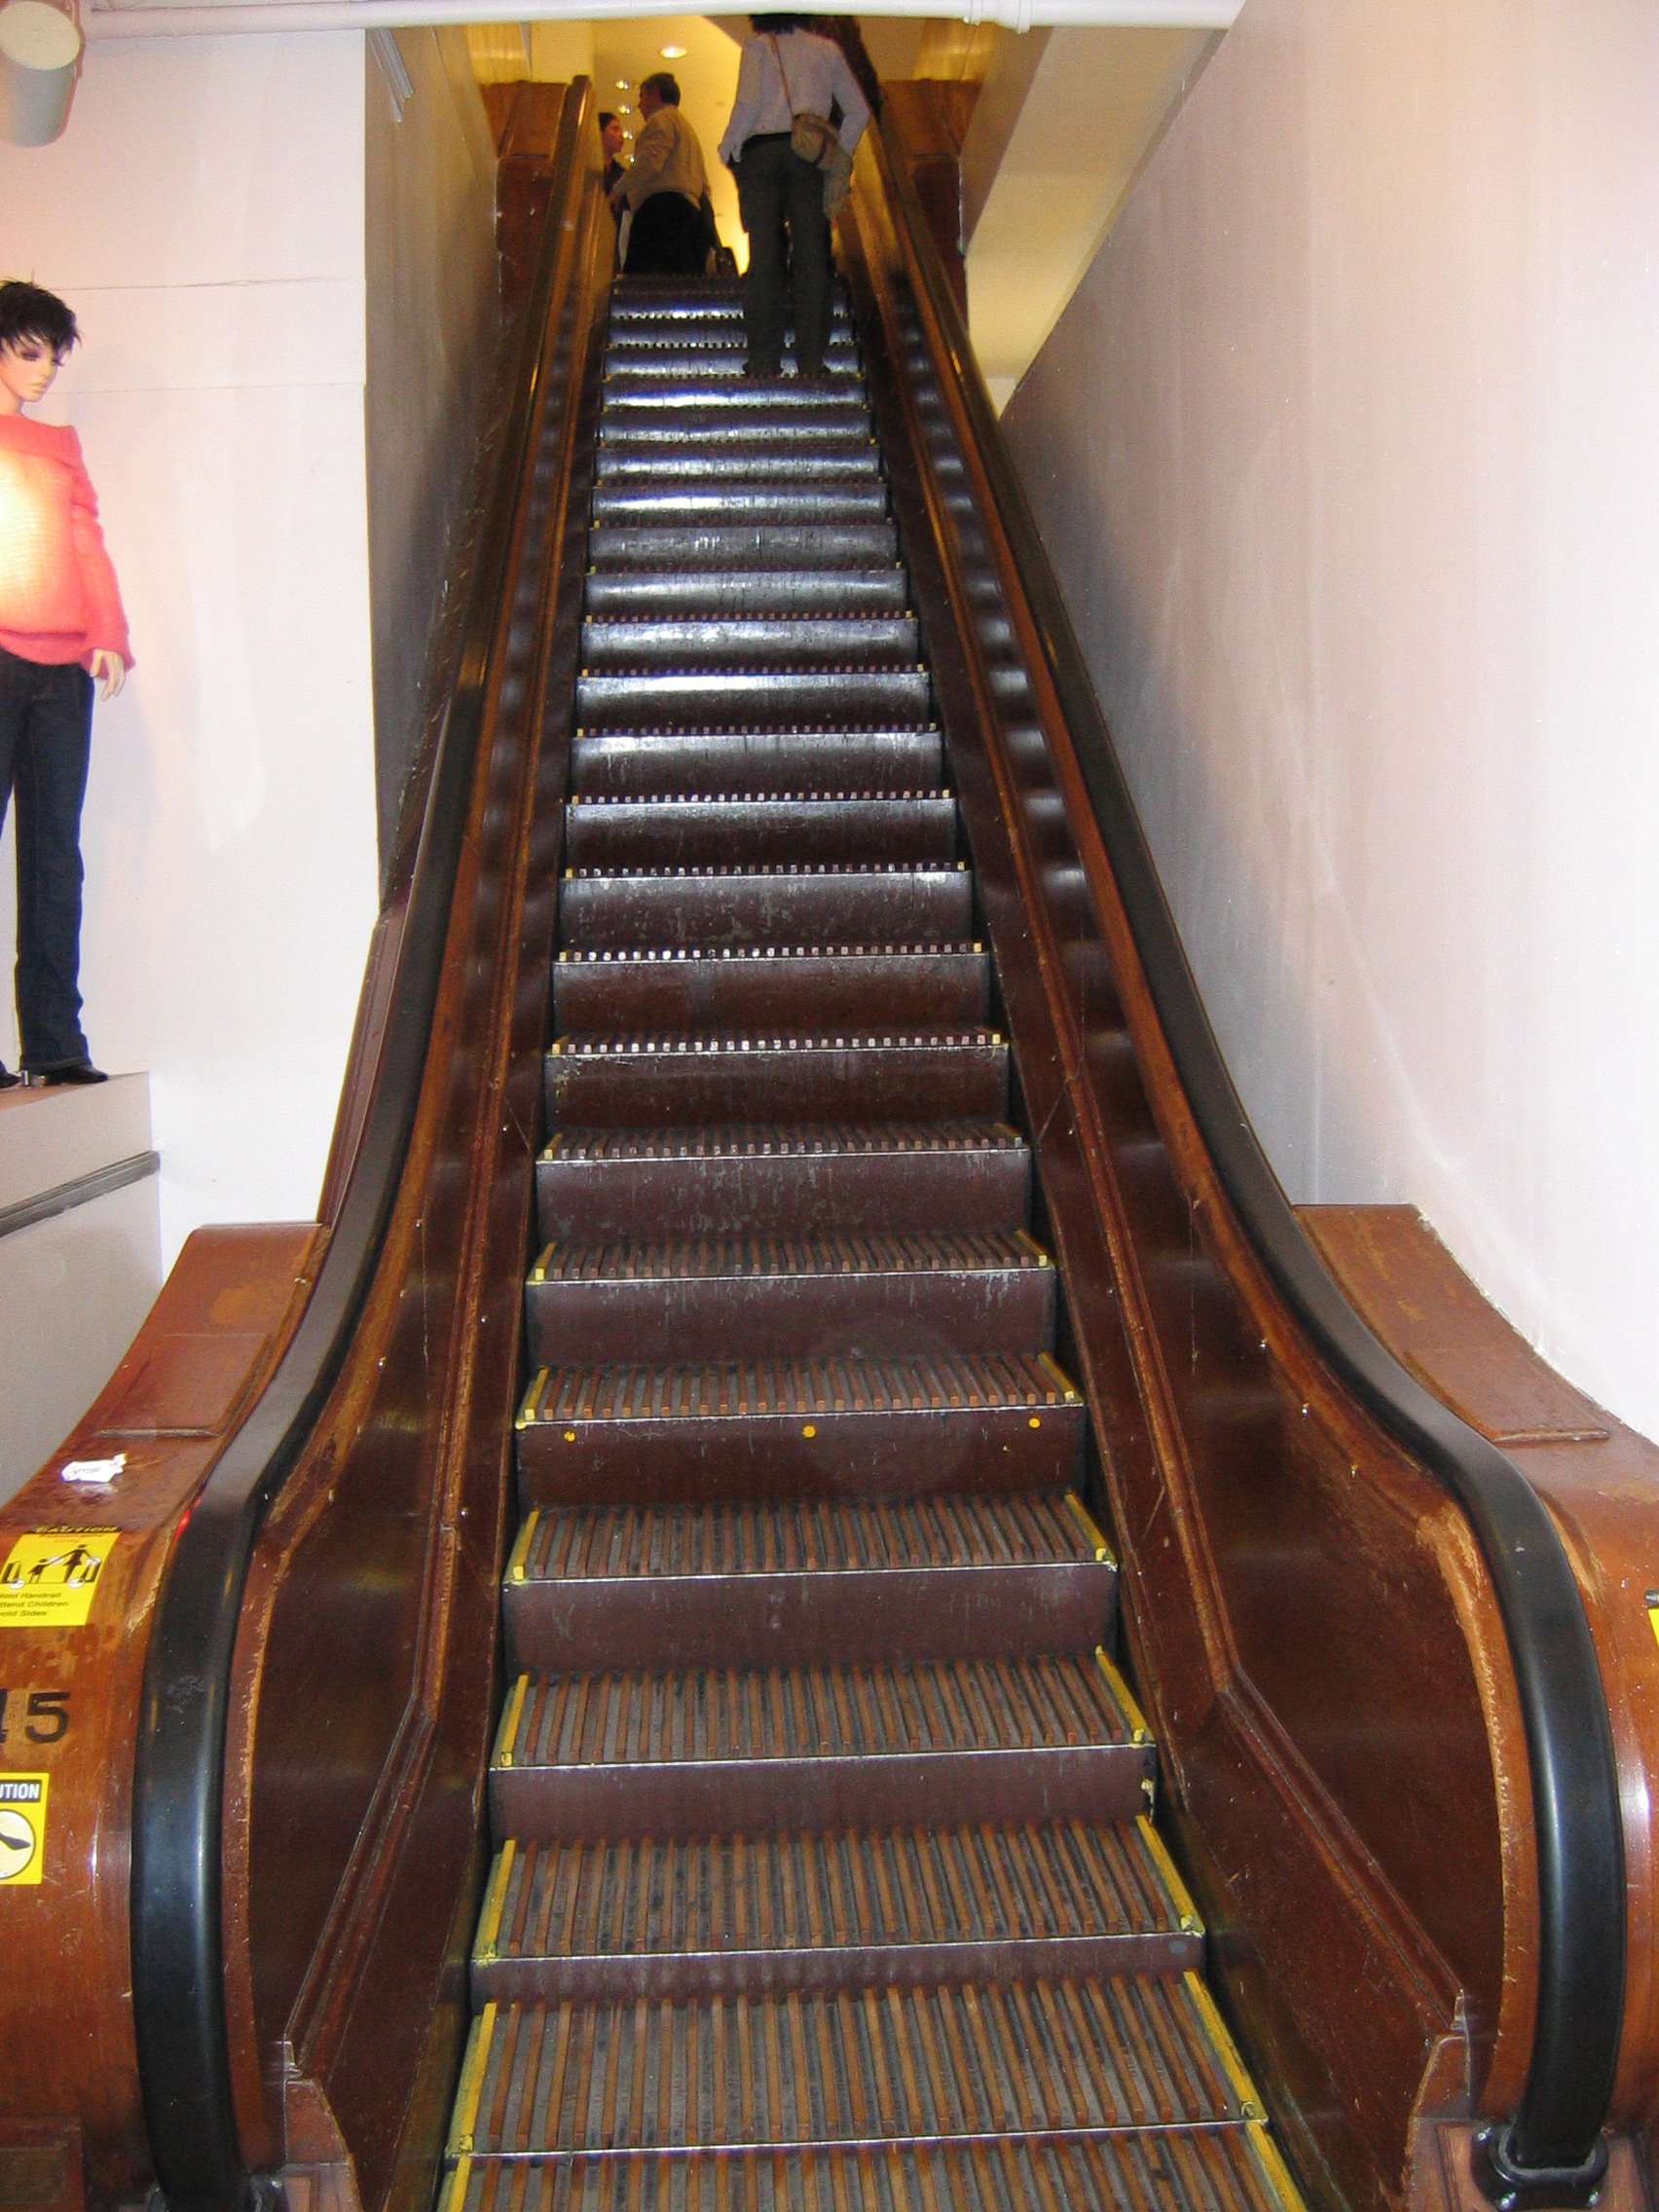 Macy's Herald Square store in New York City holds some of the more famous historic escalators. The models shown here, retrofitted with metal steps in the 1990s, are among the oldest of the store's 40 escalators. Otis